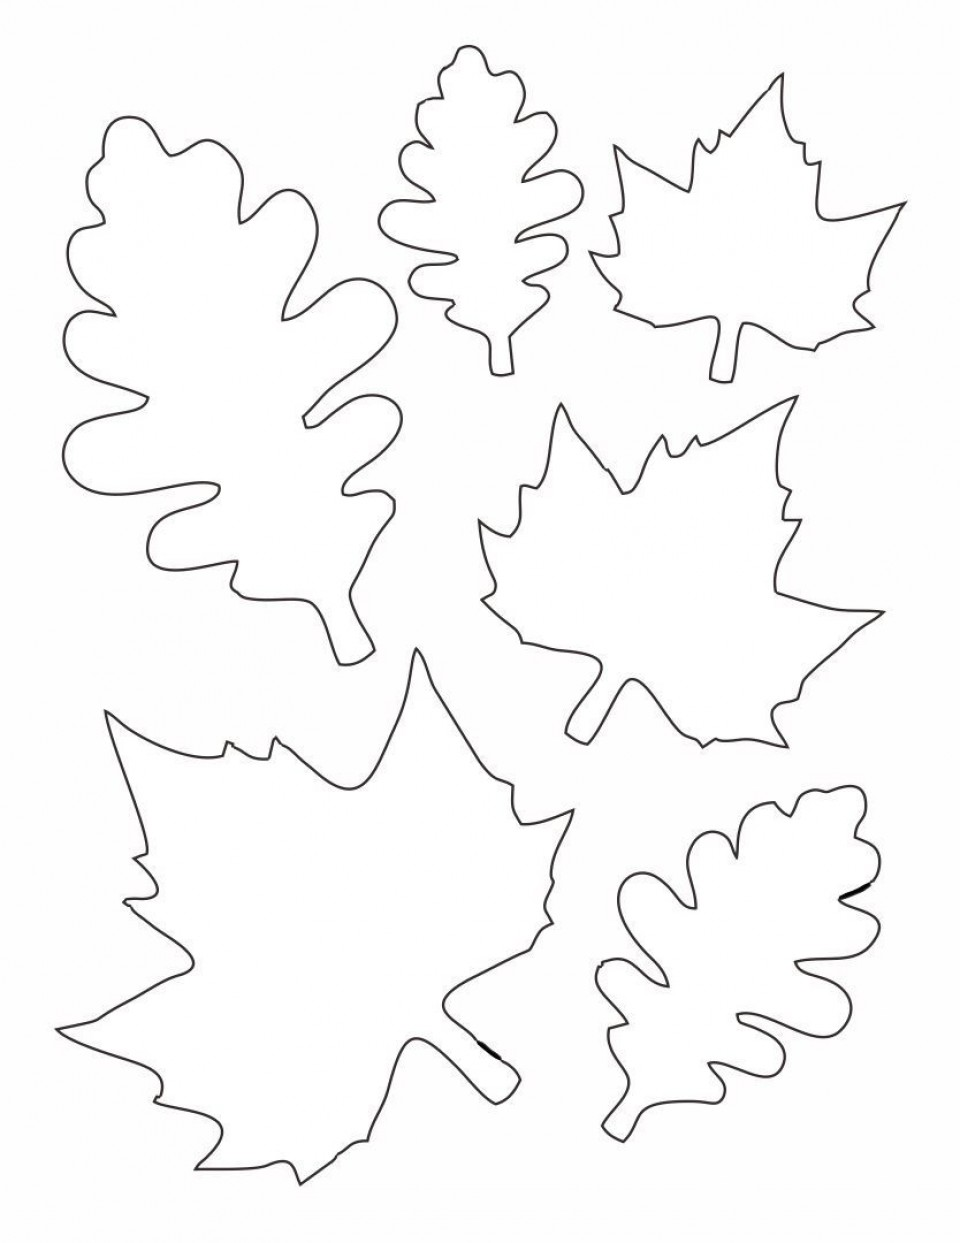 010 Unique Blank Leaf Template With Line Inspiration  Printable960